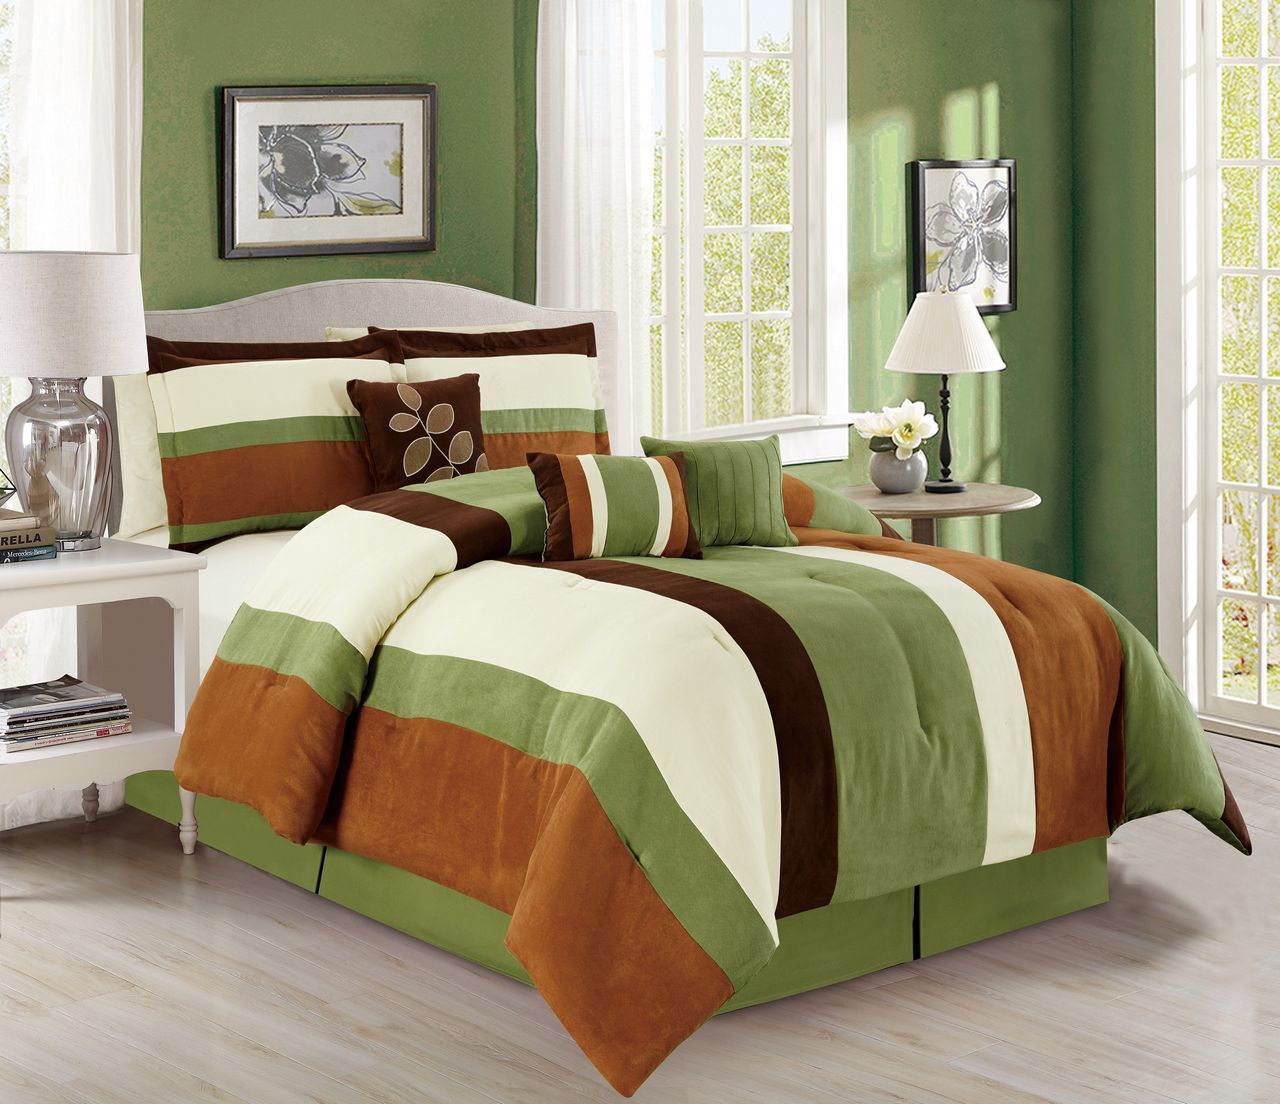 wrinkle set style xl and sets for eventify comforter duvet me black taupe twin plan hotel brown